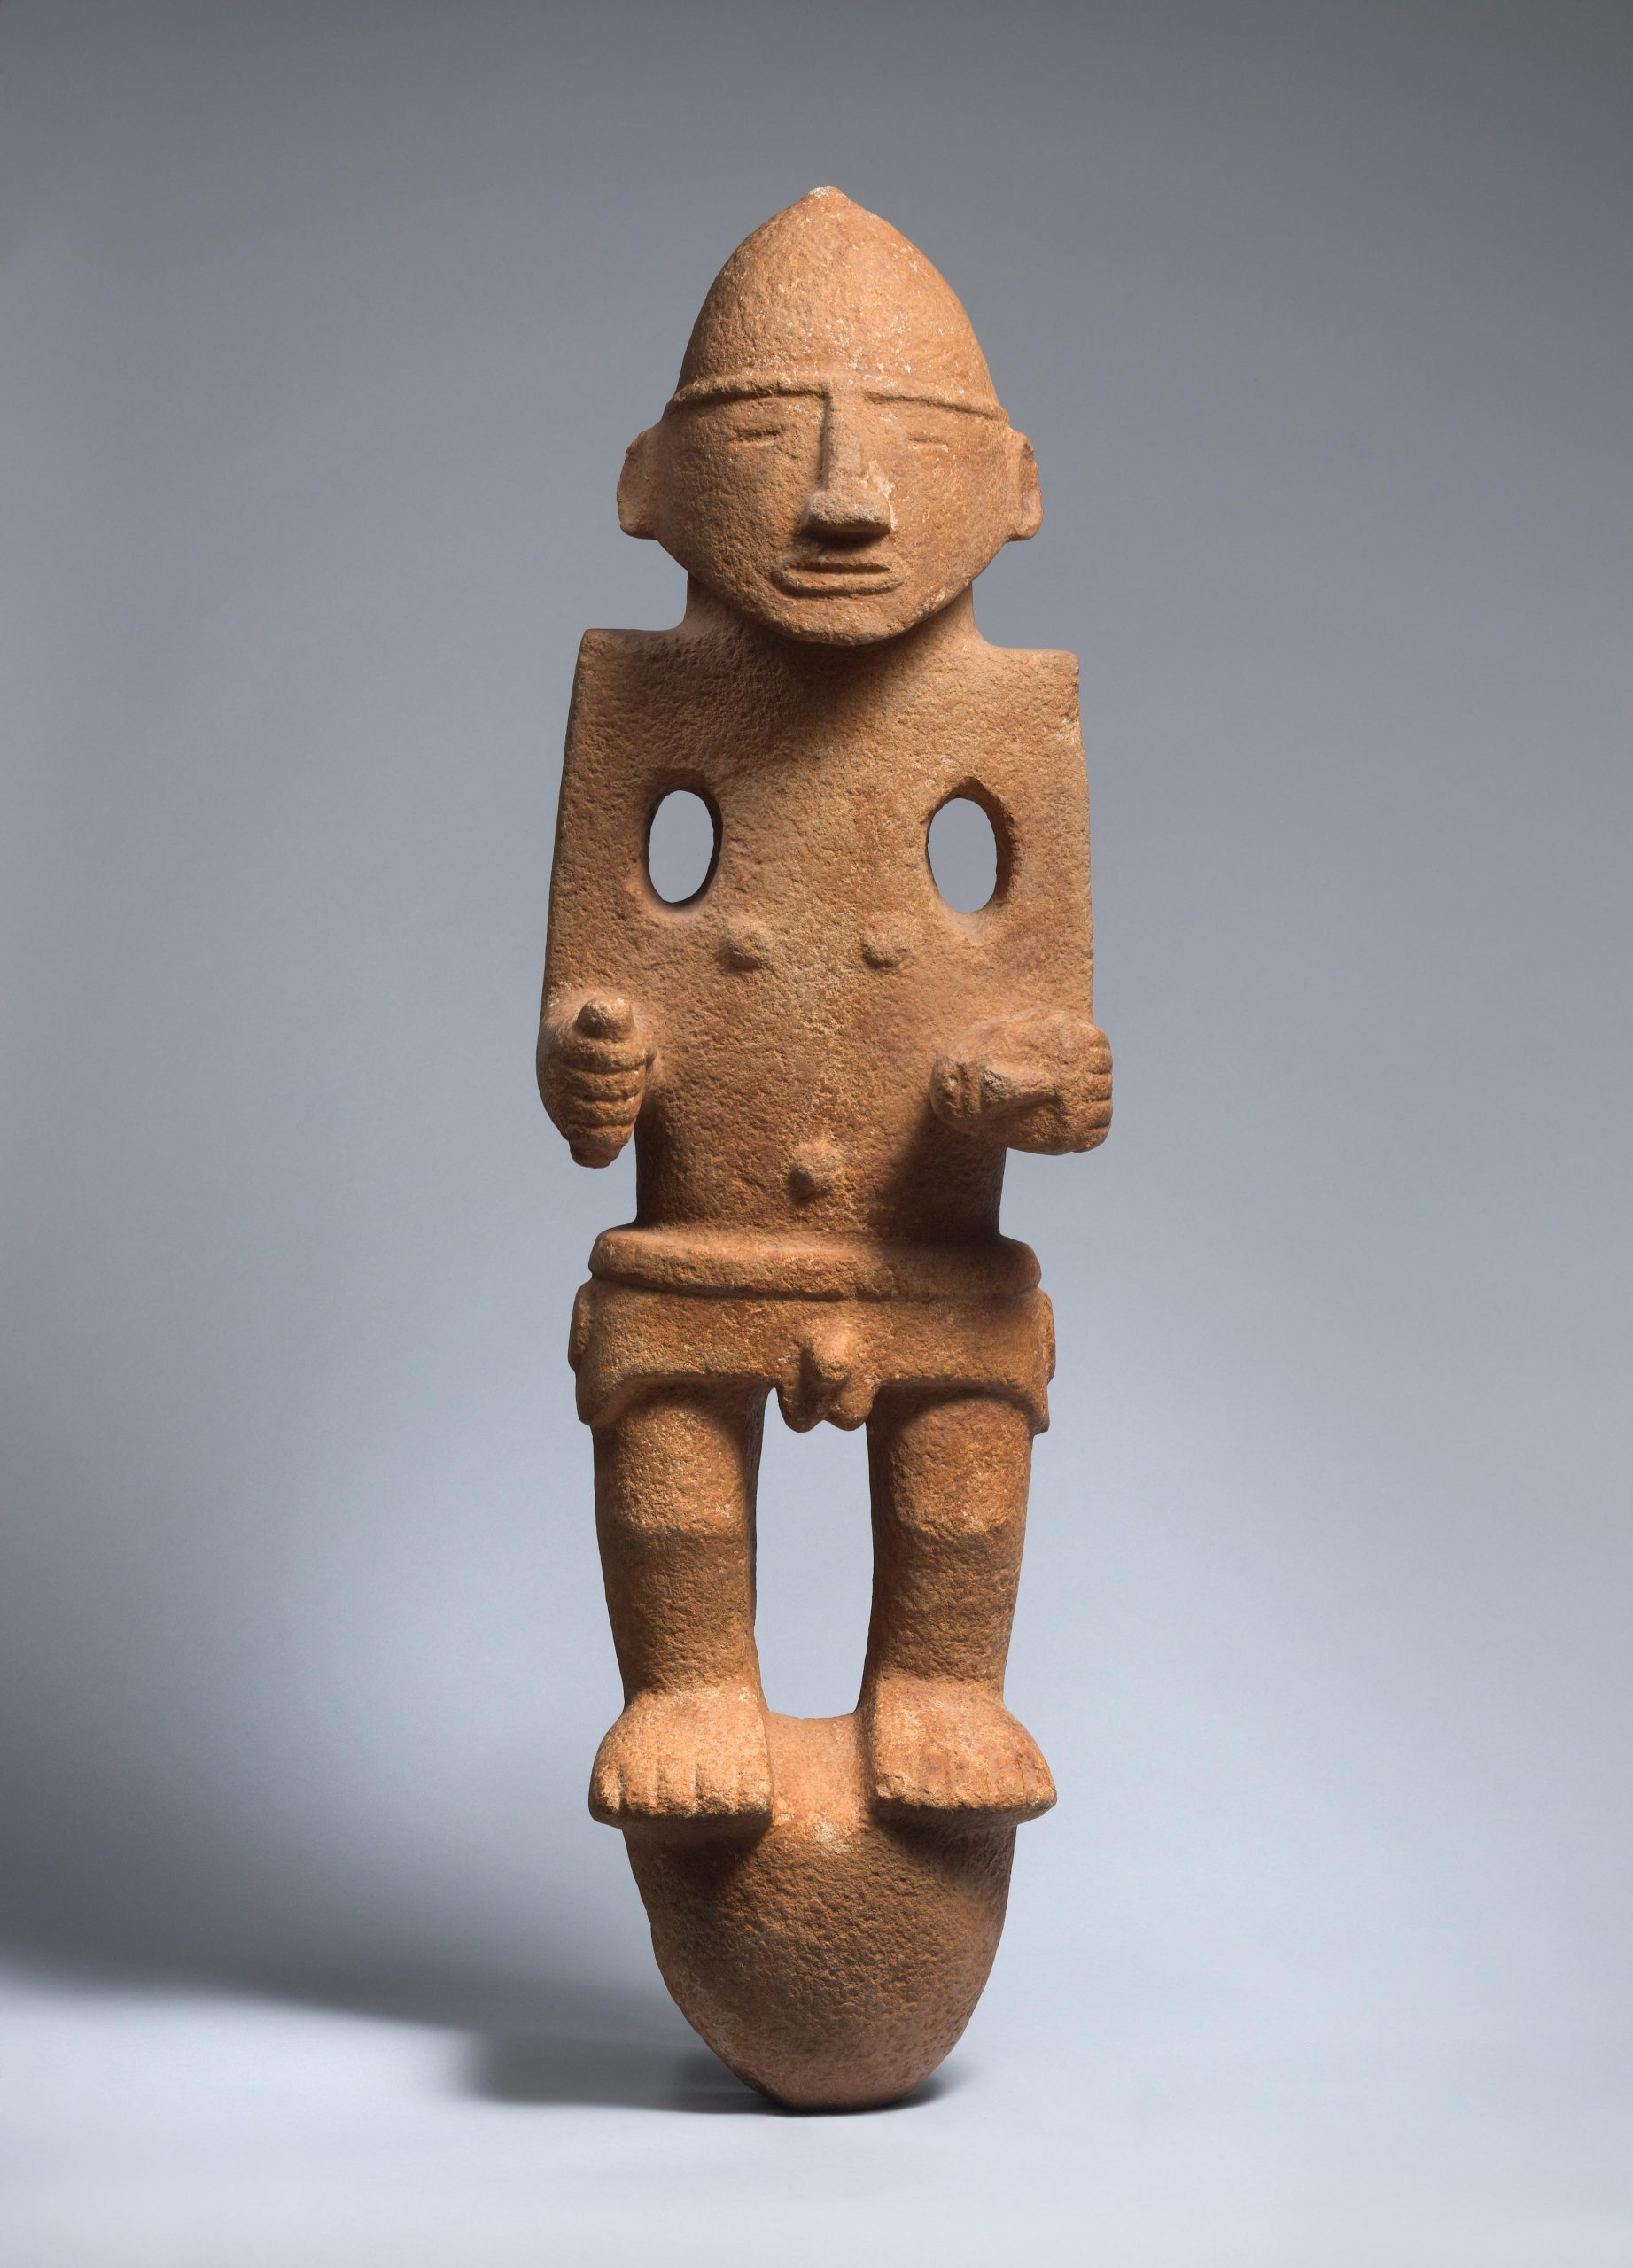 Stone sculpture of a man holding a small head and a tool, wearing a helmet and a belt.